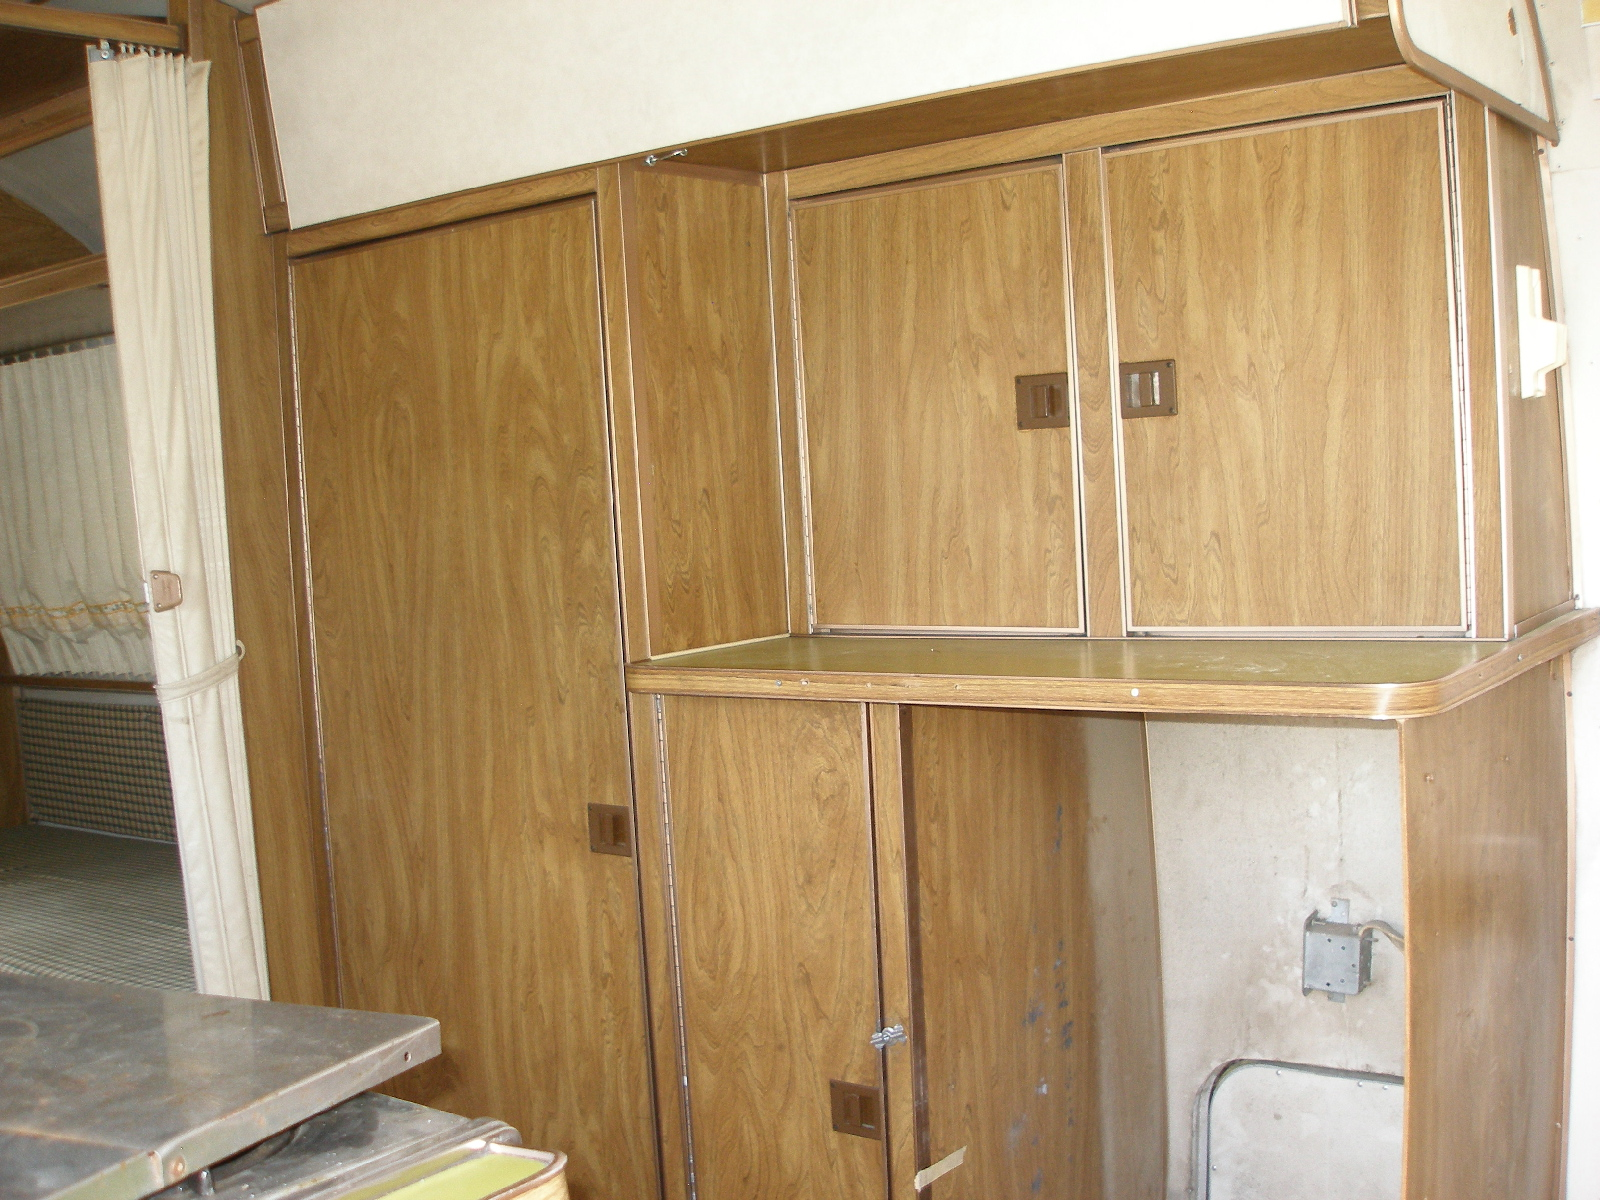 Click image for larger version  Name:Old refer cabinet.jpg Views:71 Size:997.9 KB ID:95504